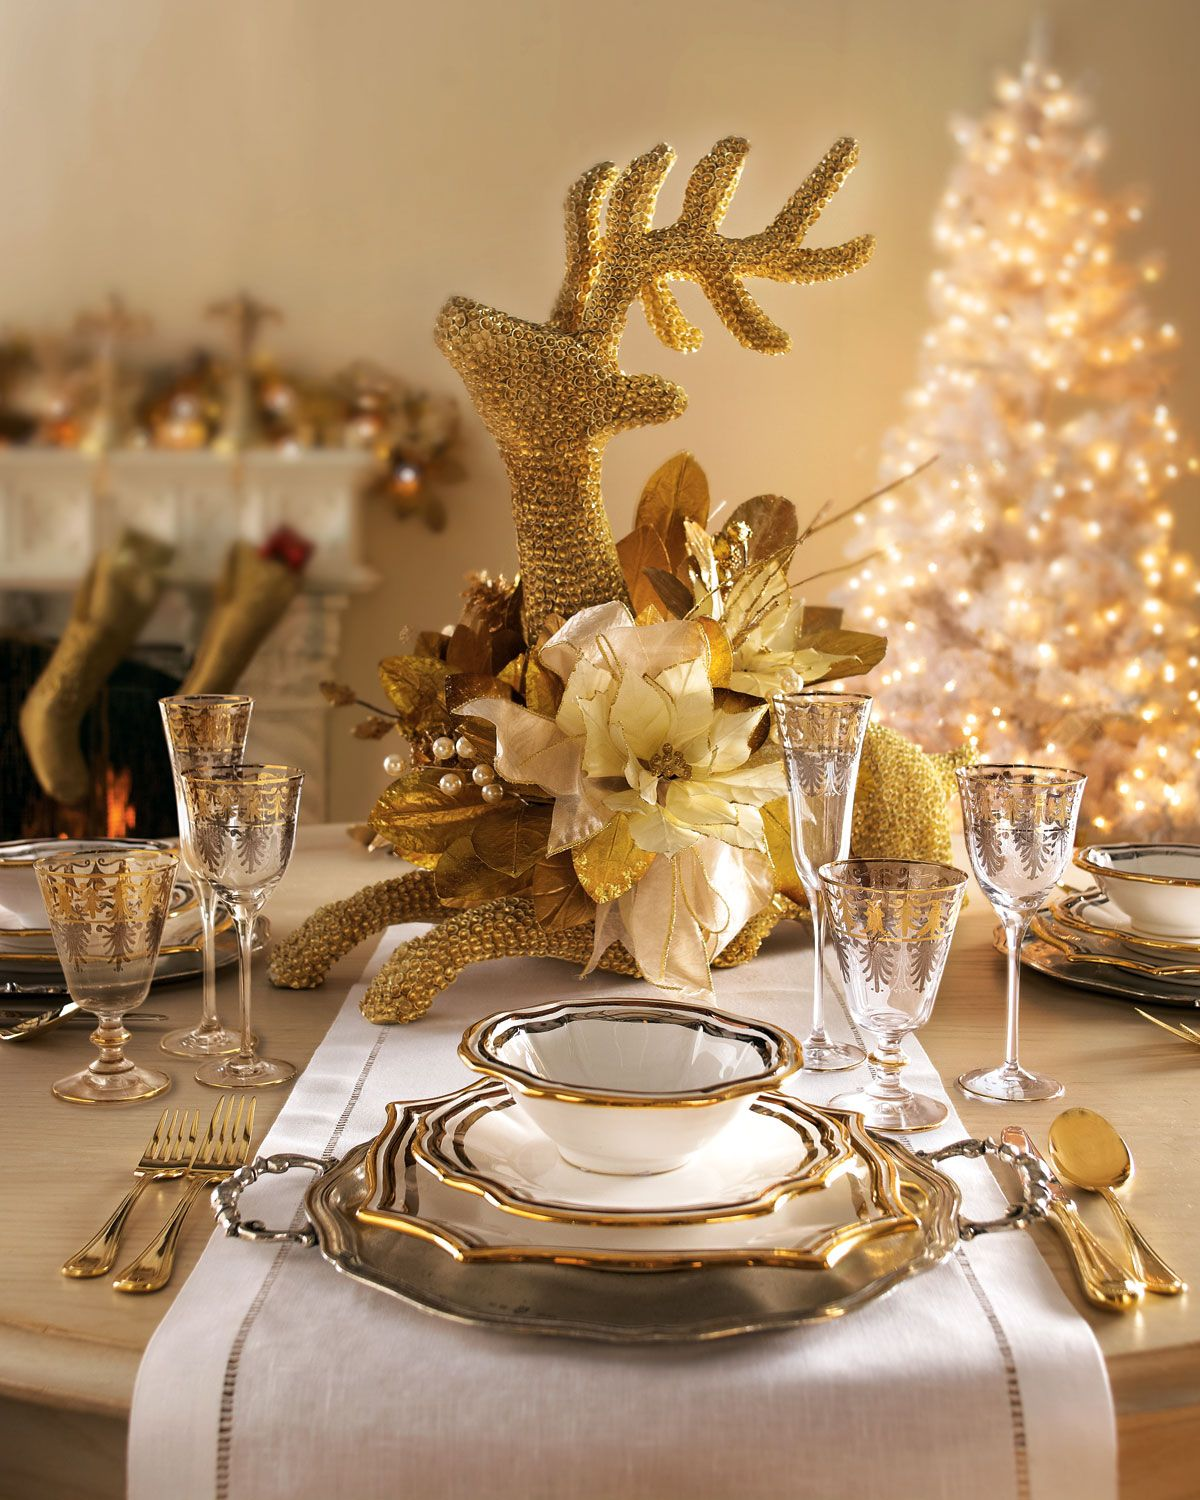 Christmas table decoration ideas for parties - Dinner Table Decorations